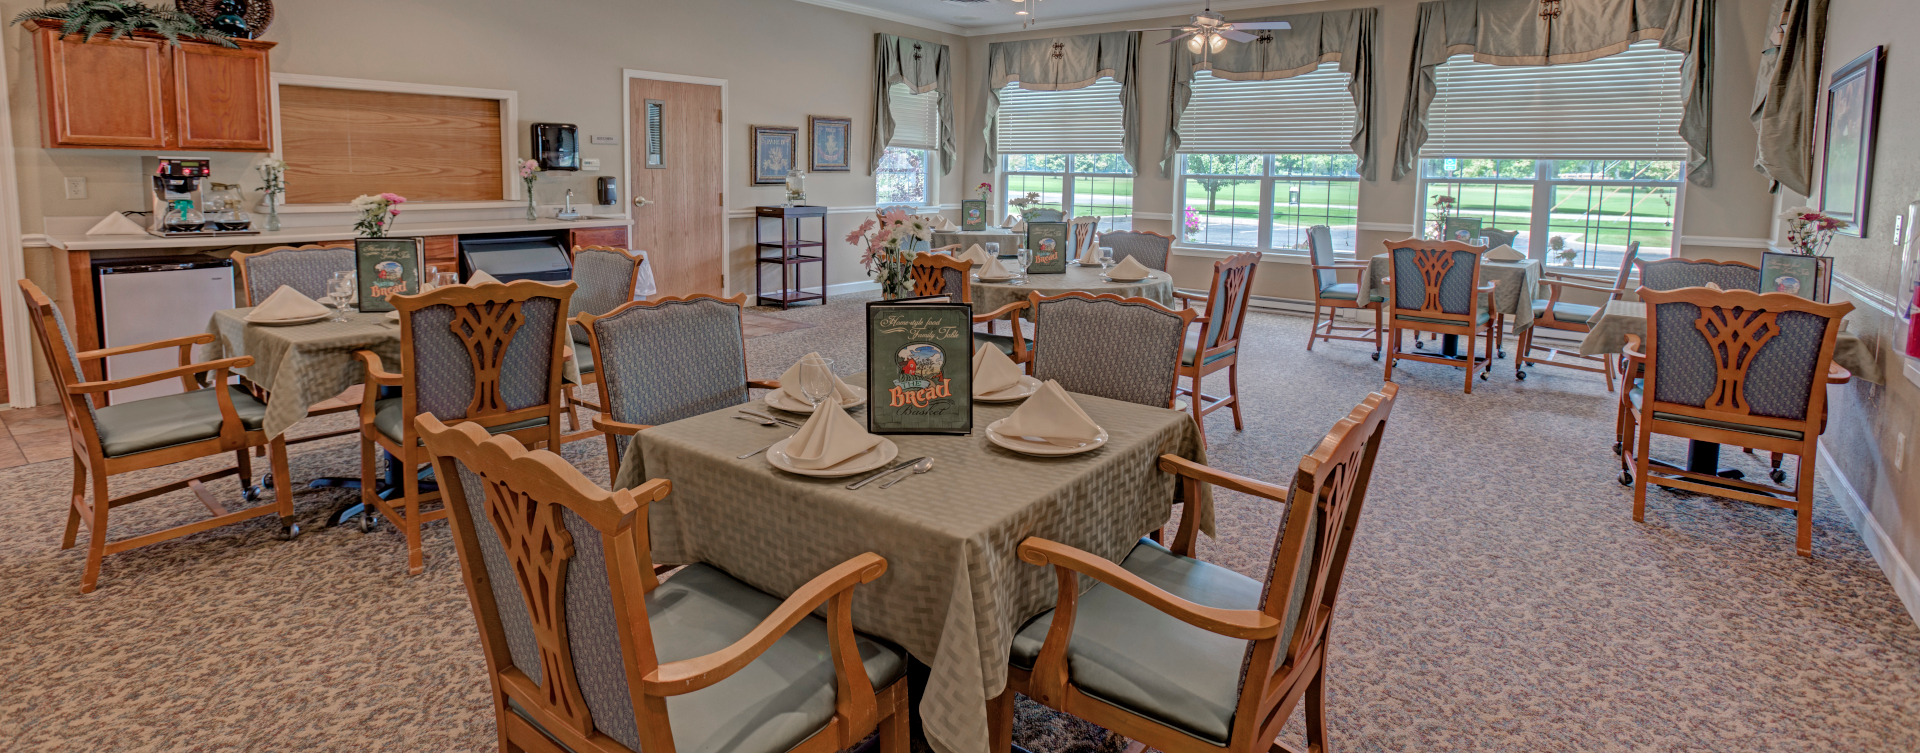 Enjoy restaurant -style meals served three times a day in our dining room at Bickford of Wabash